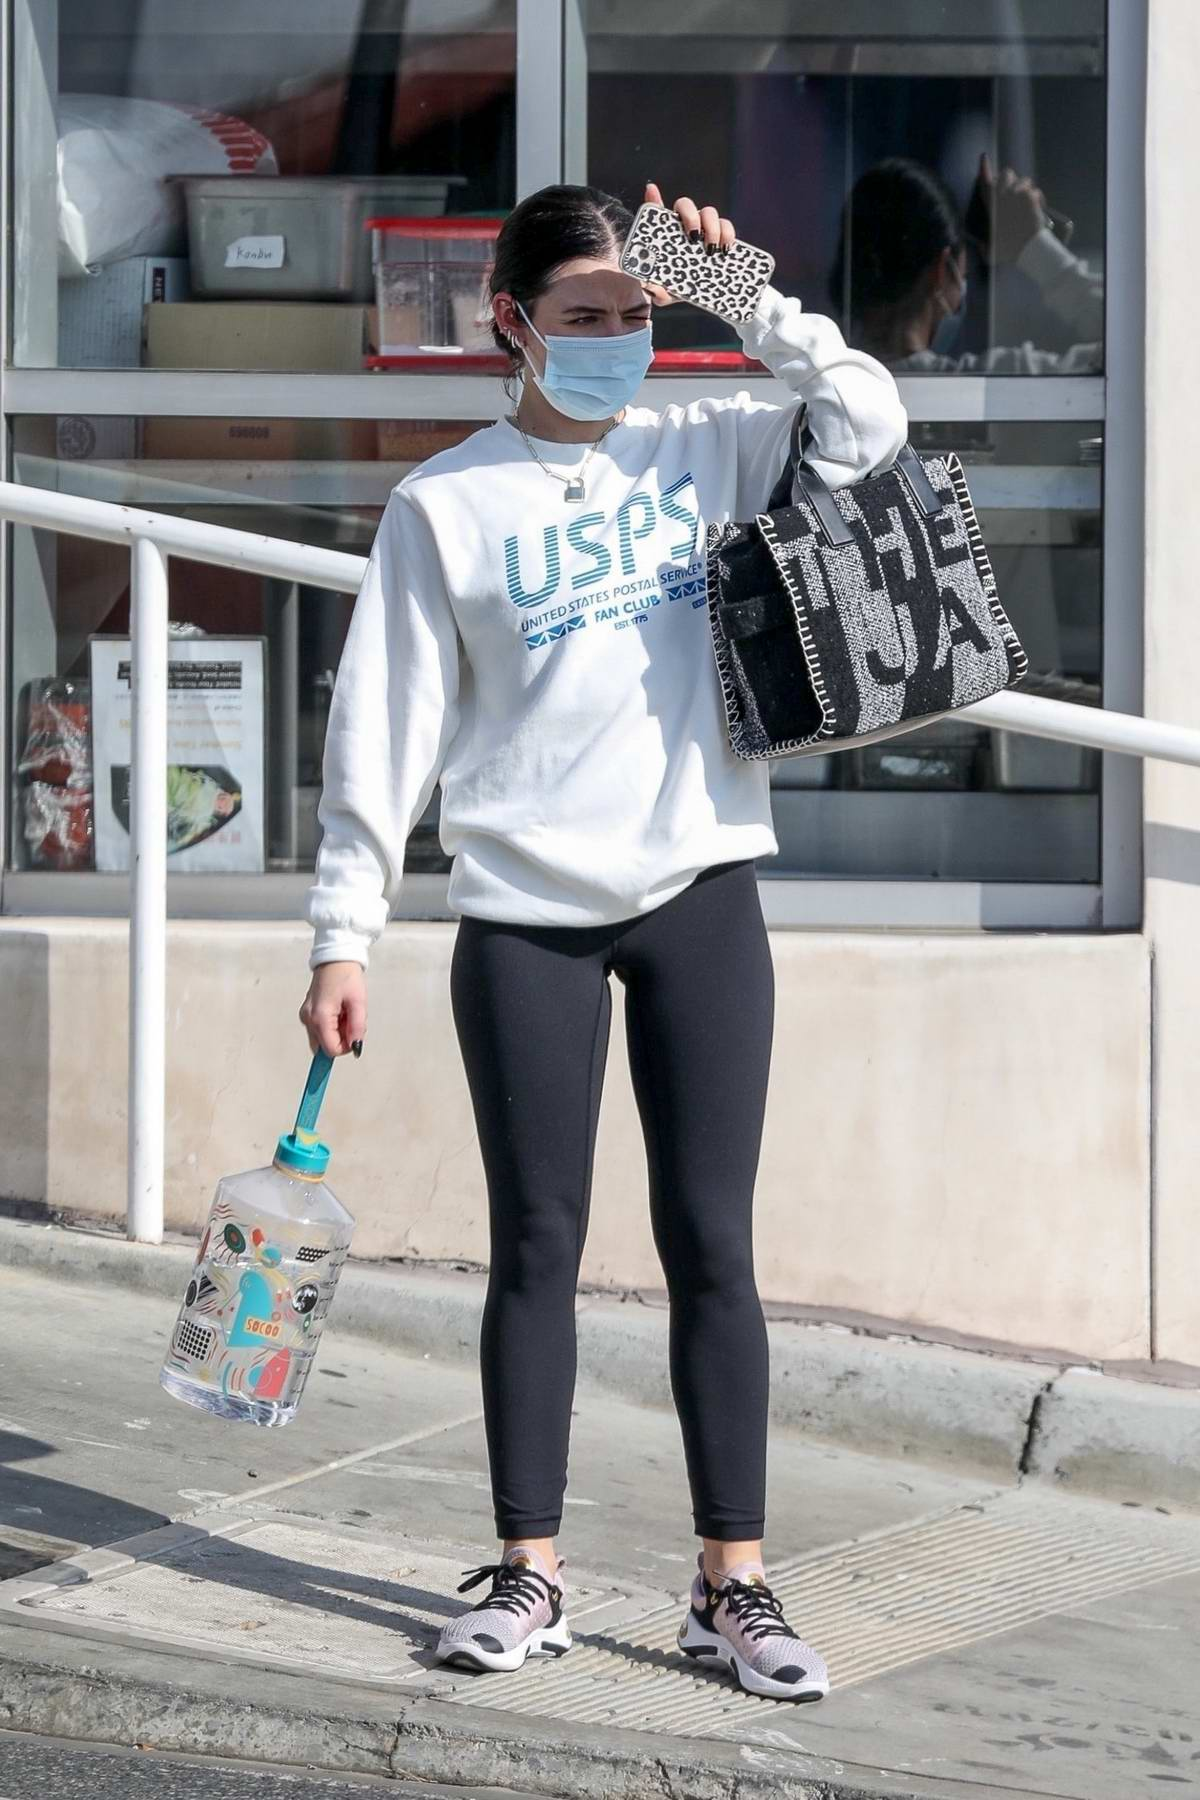 Lucy Hale dons USPS sweatshirt and leggings as she wraps up her workout and picks up some coffee to-go in Los Angeles